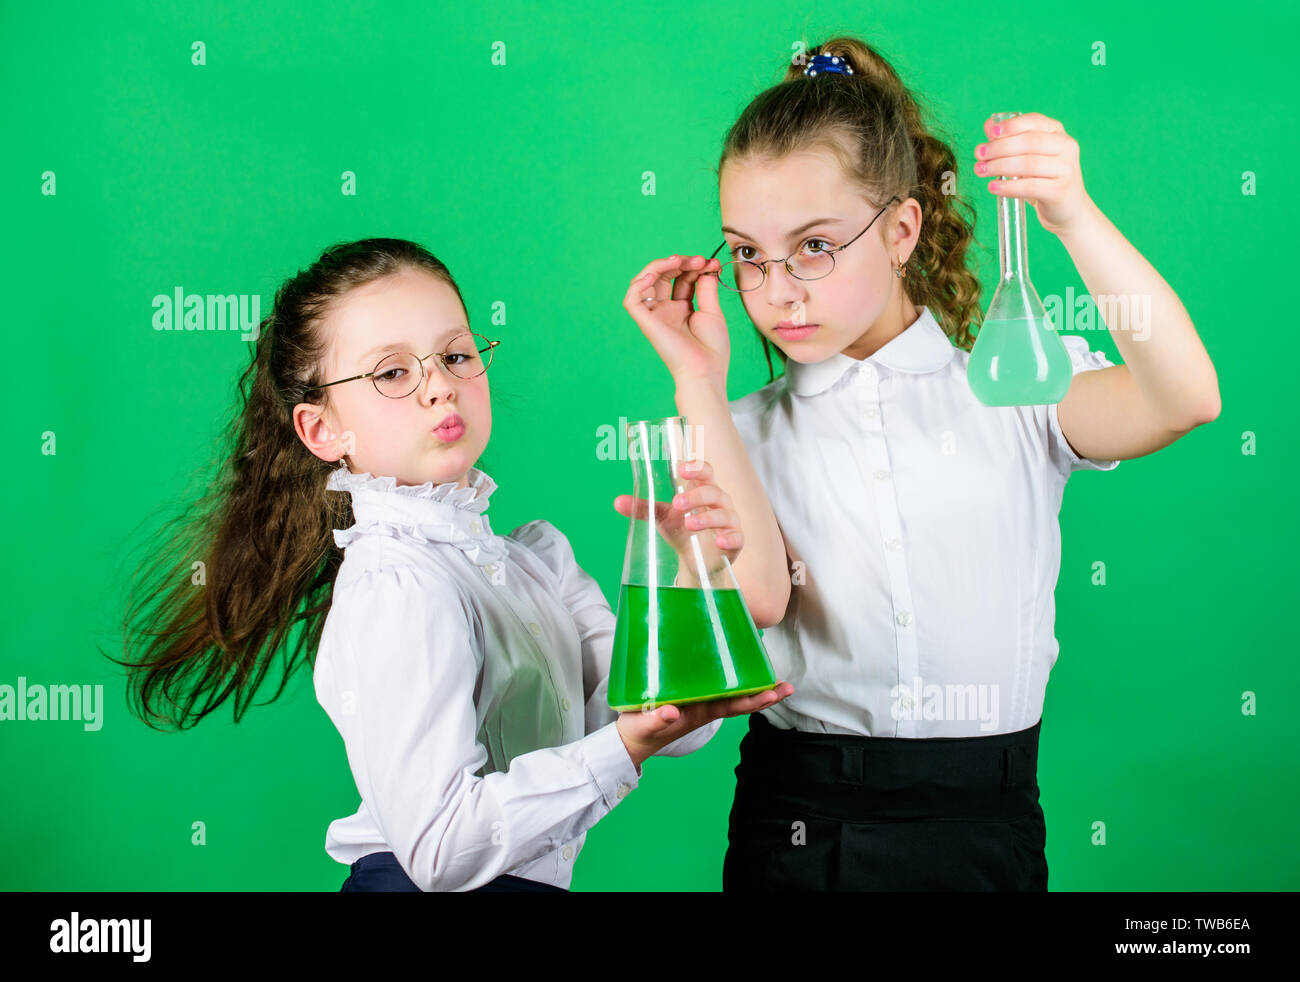 The formula is almost complete. school kid scientist studying science. children study chemistry lab. little smart girls with testing flask. biology education. back to school. formula concept. formula. - Stock Image